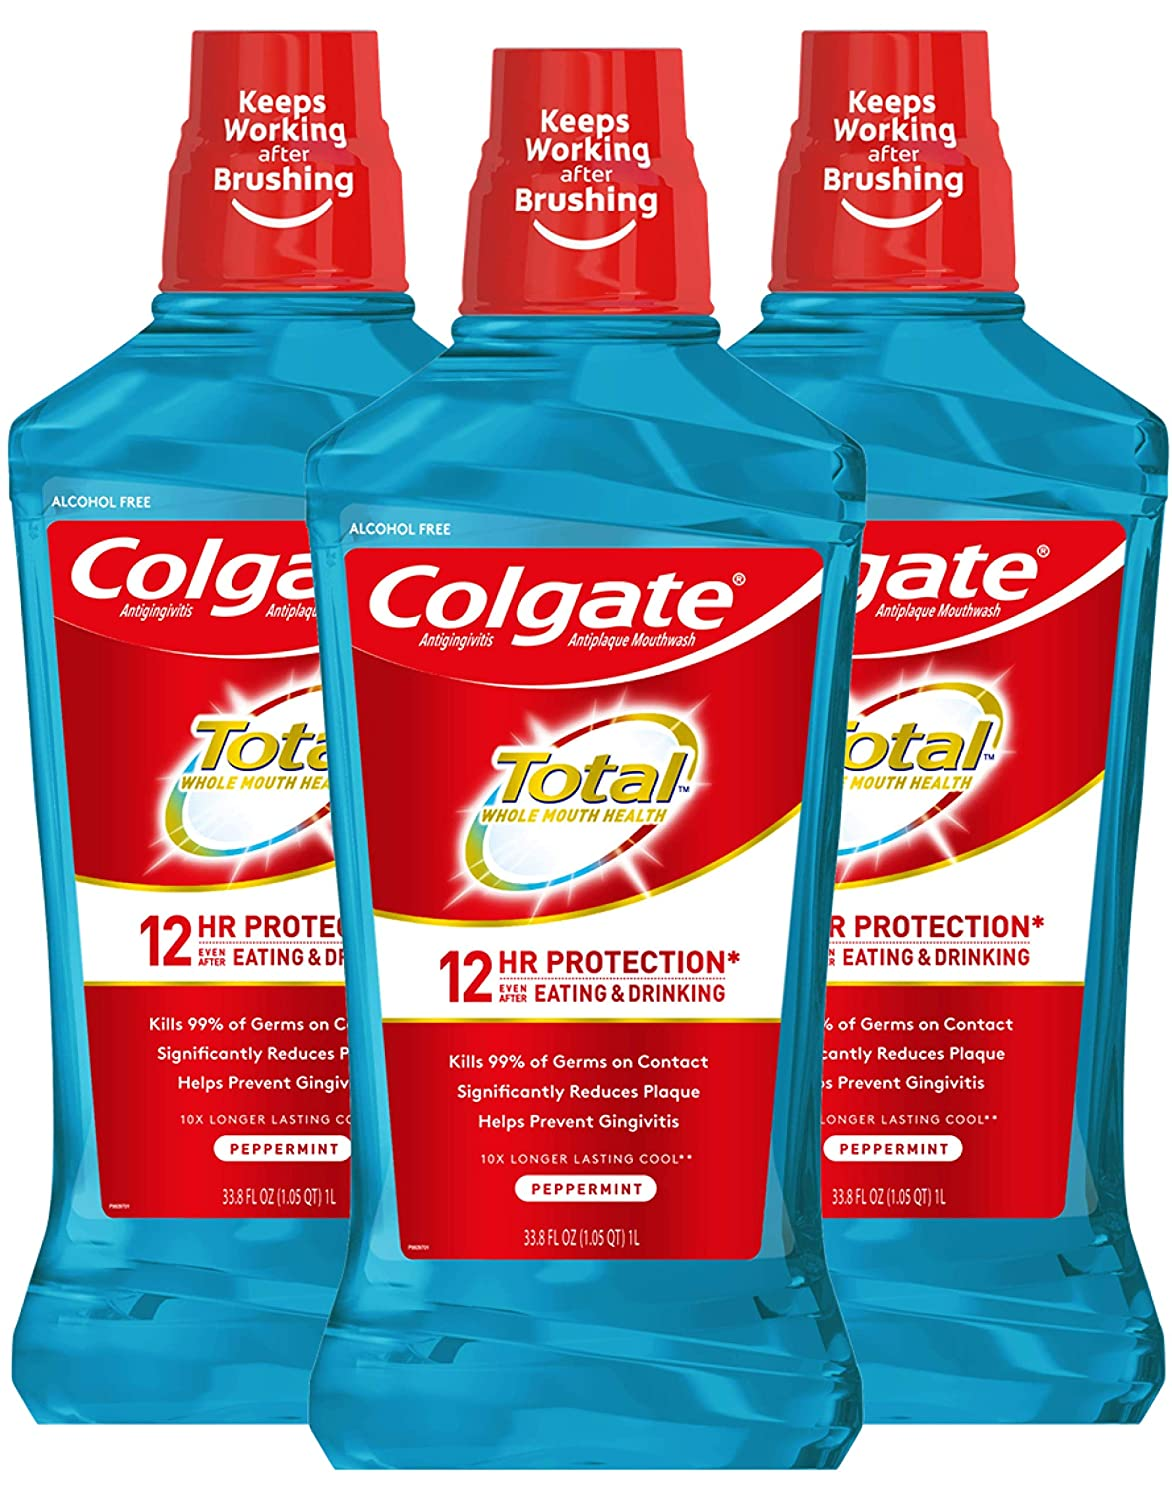 Colgate Total Alcohol Free Mouthwash 1L - 3 count